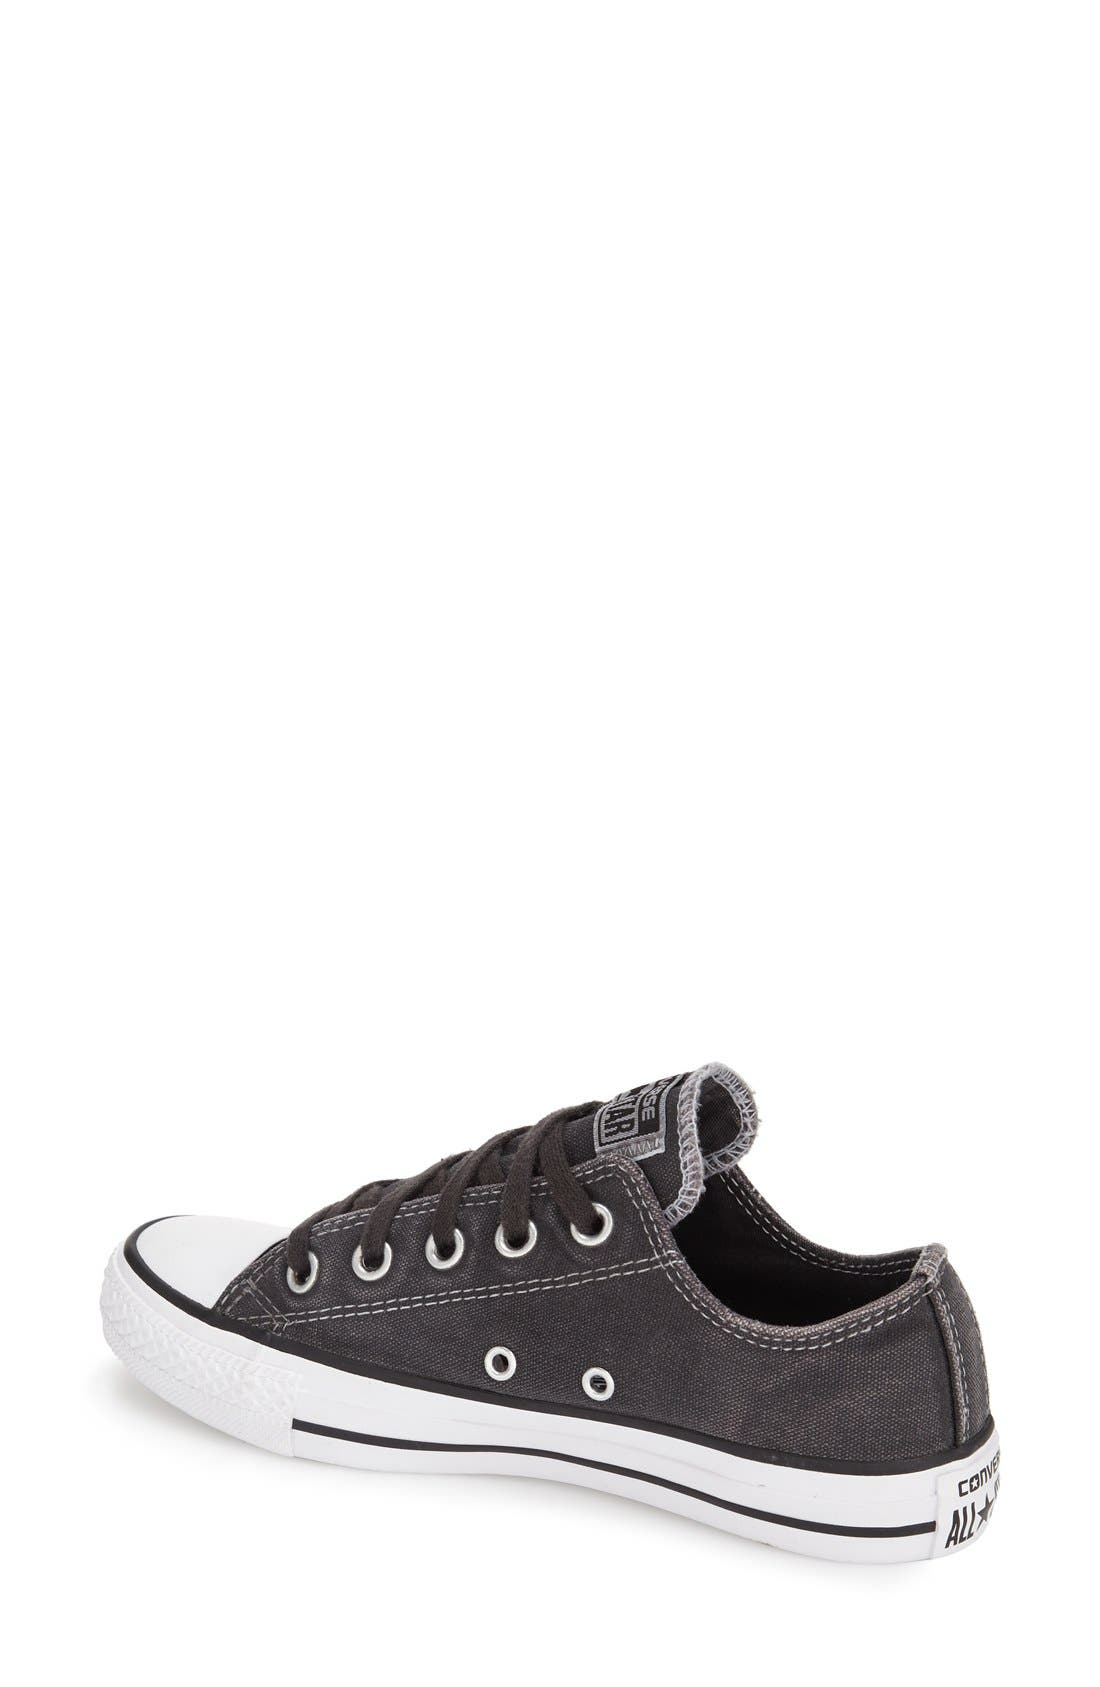 Alternate Image 2  - Converse Chuck Taylor® All Star® Low Top Sneaker (Women)